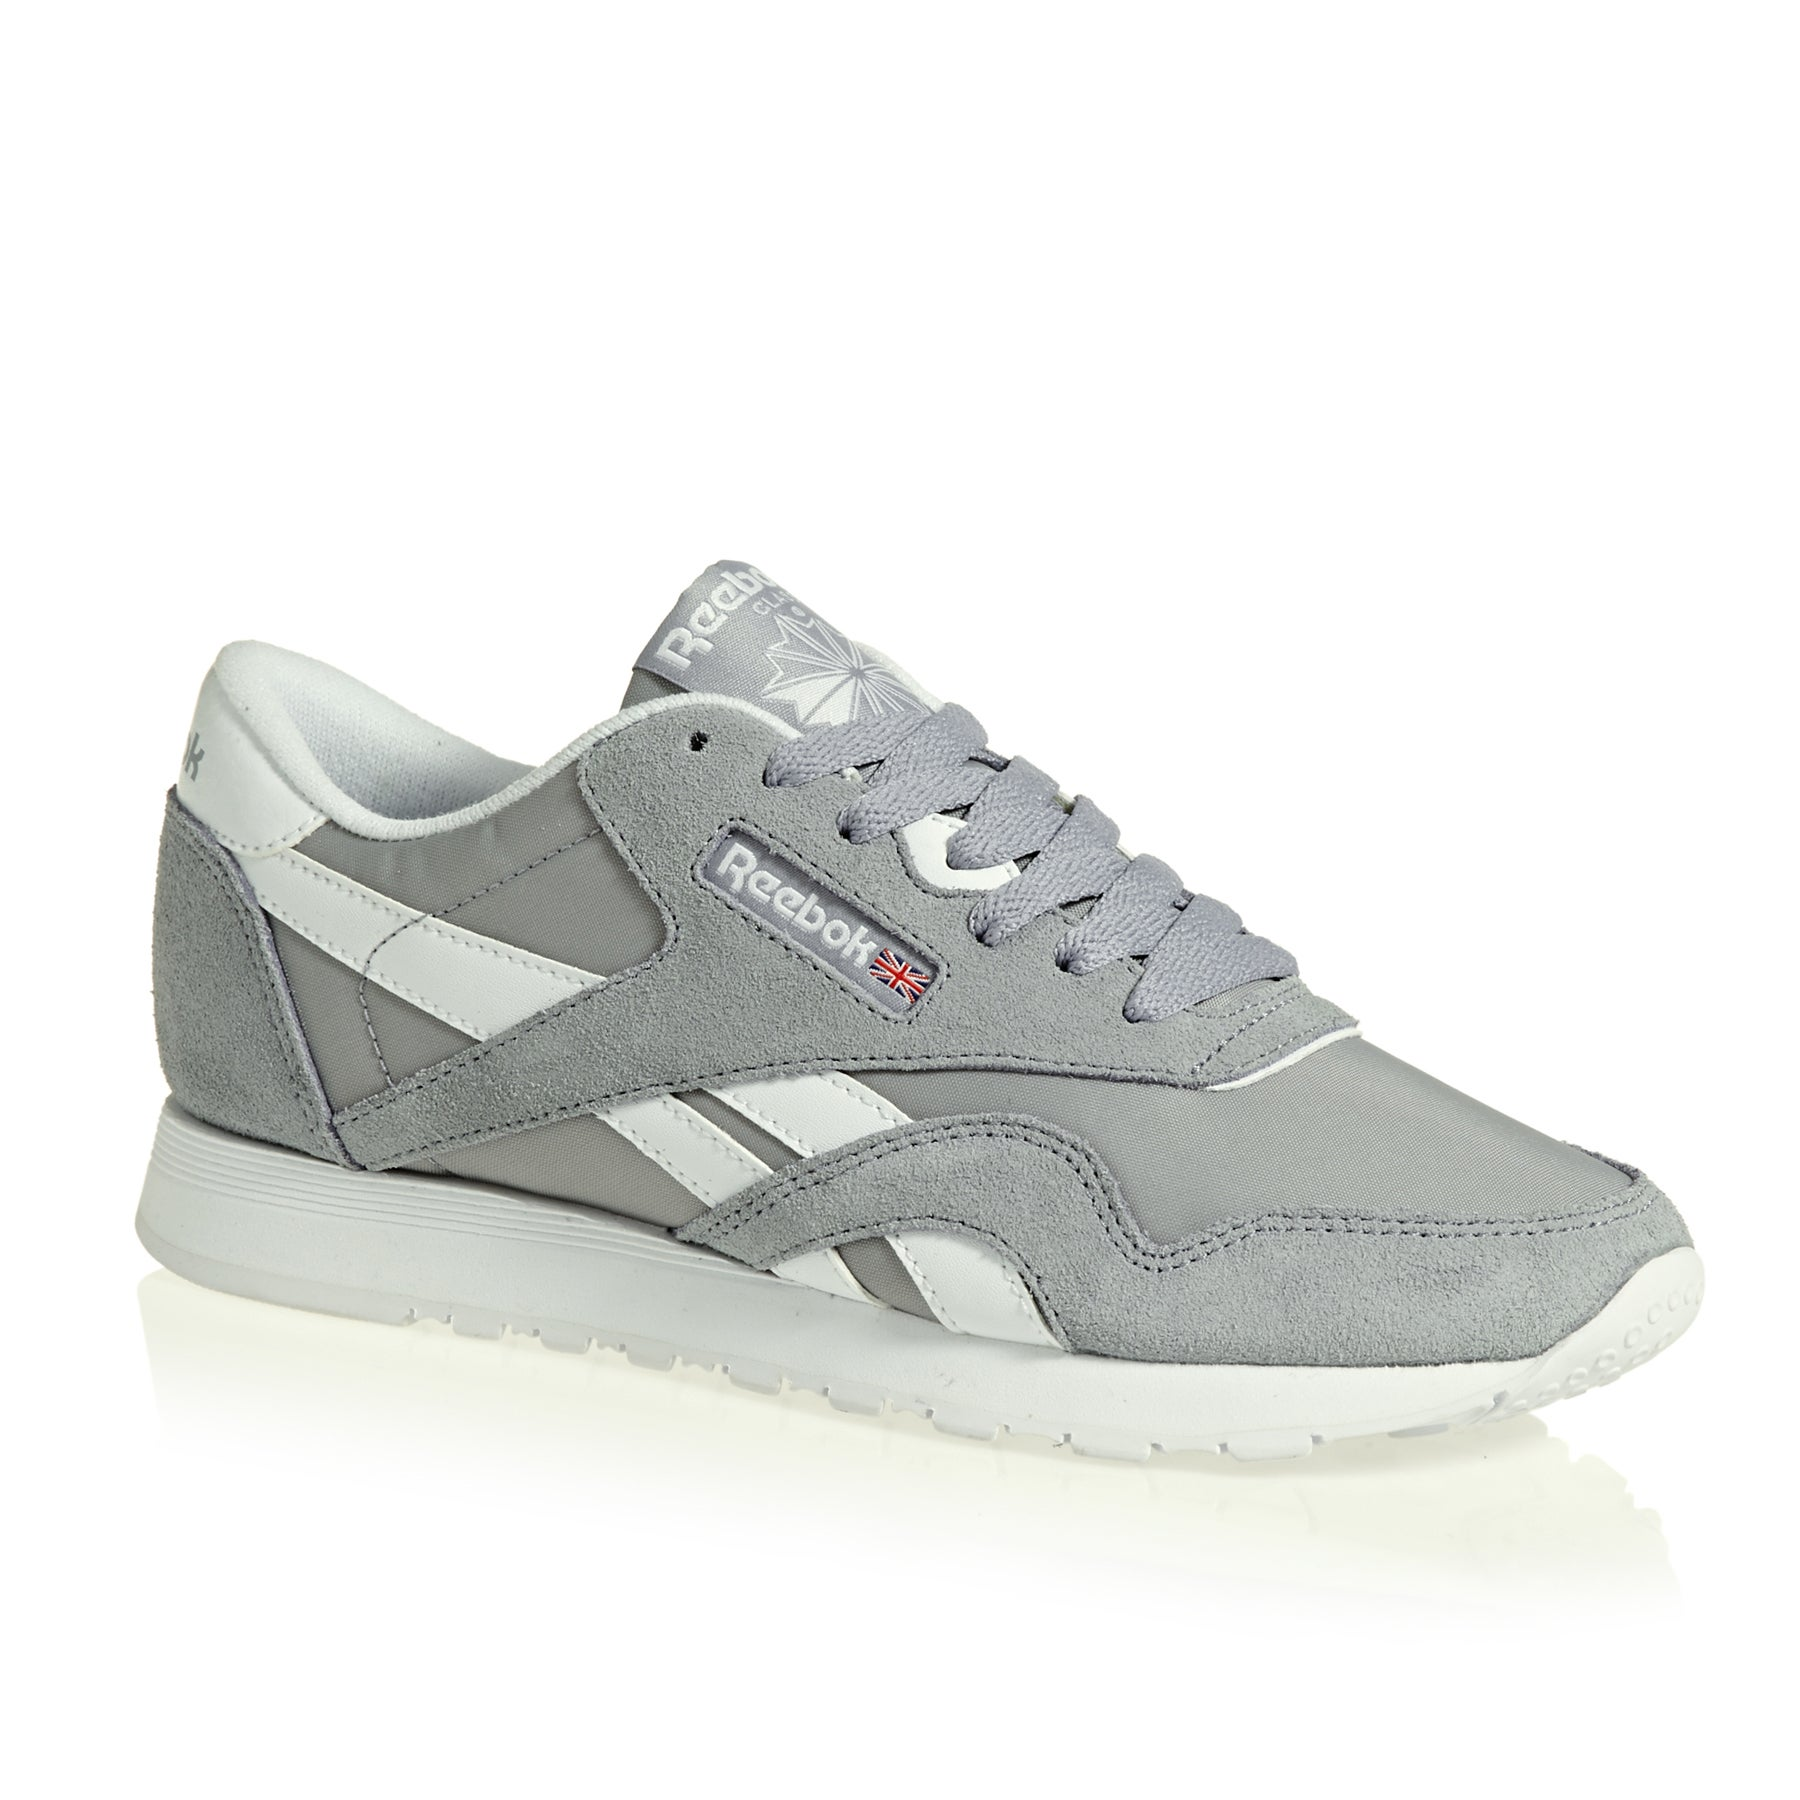 Reebok Classics Nylon Neutrals Womens Shoes - Cool Shadow / White